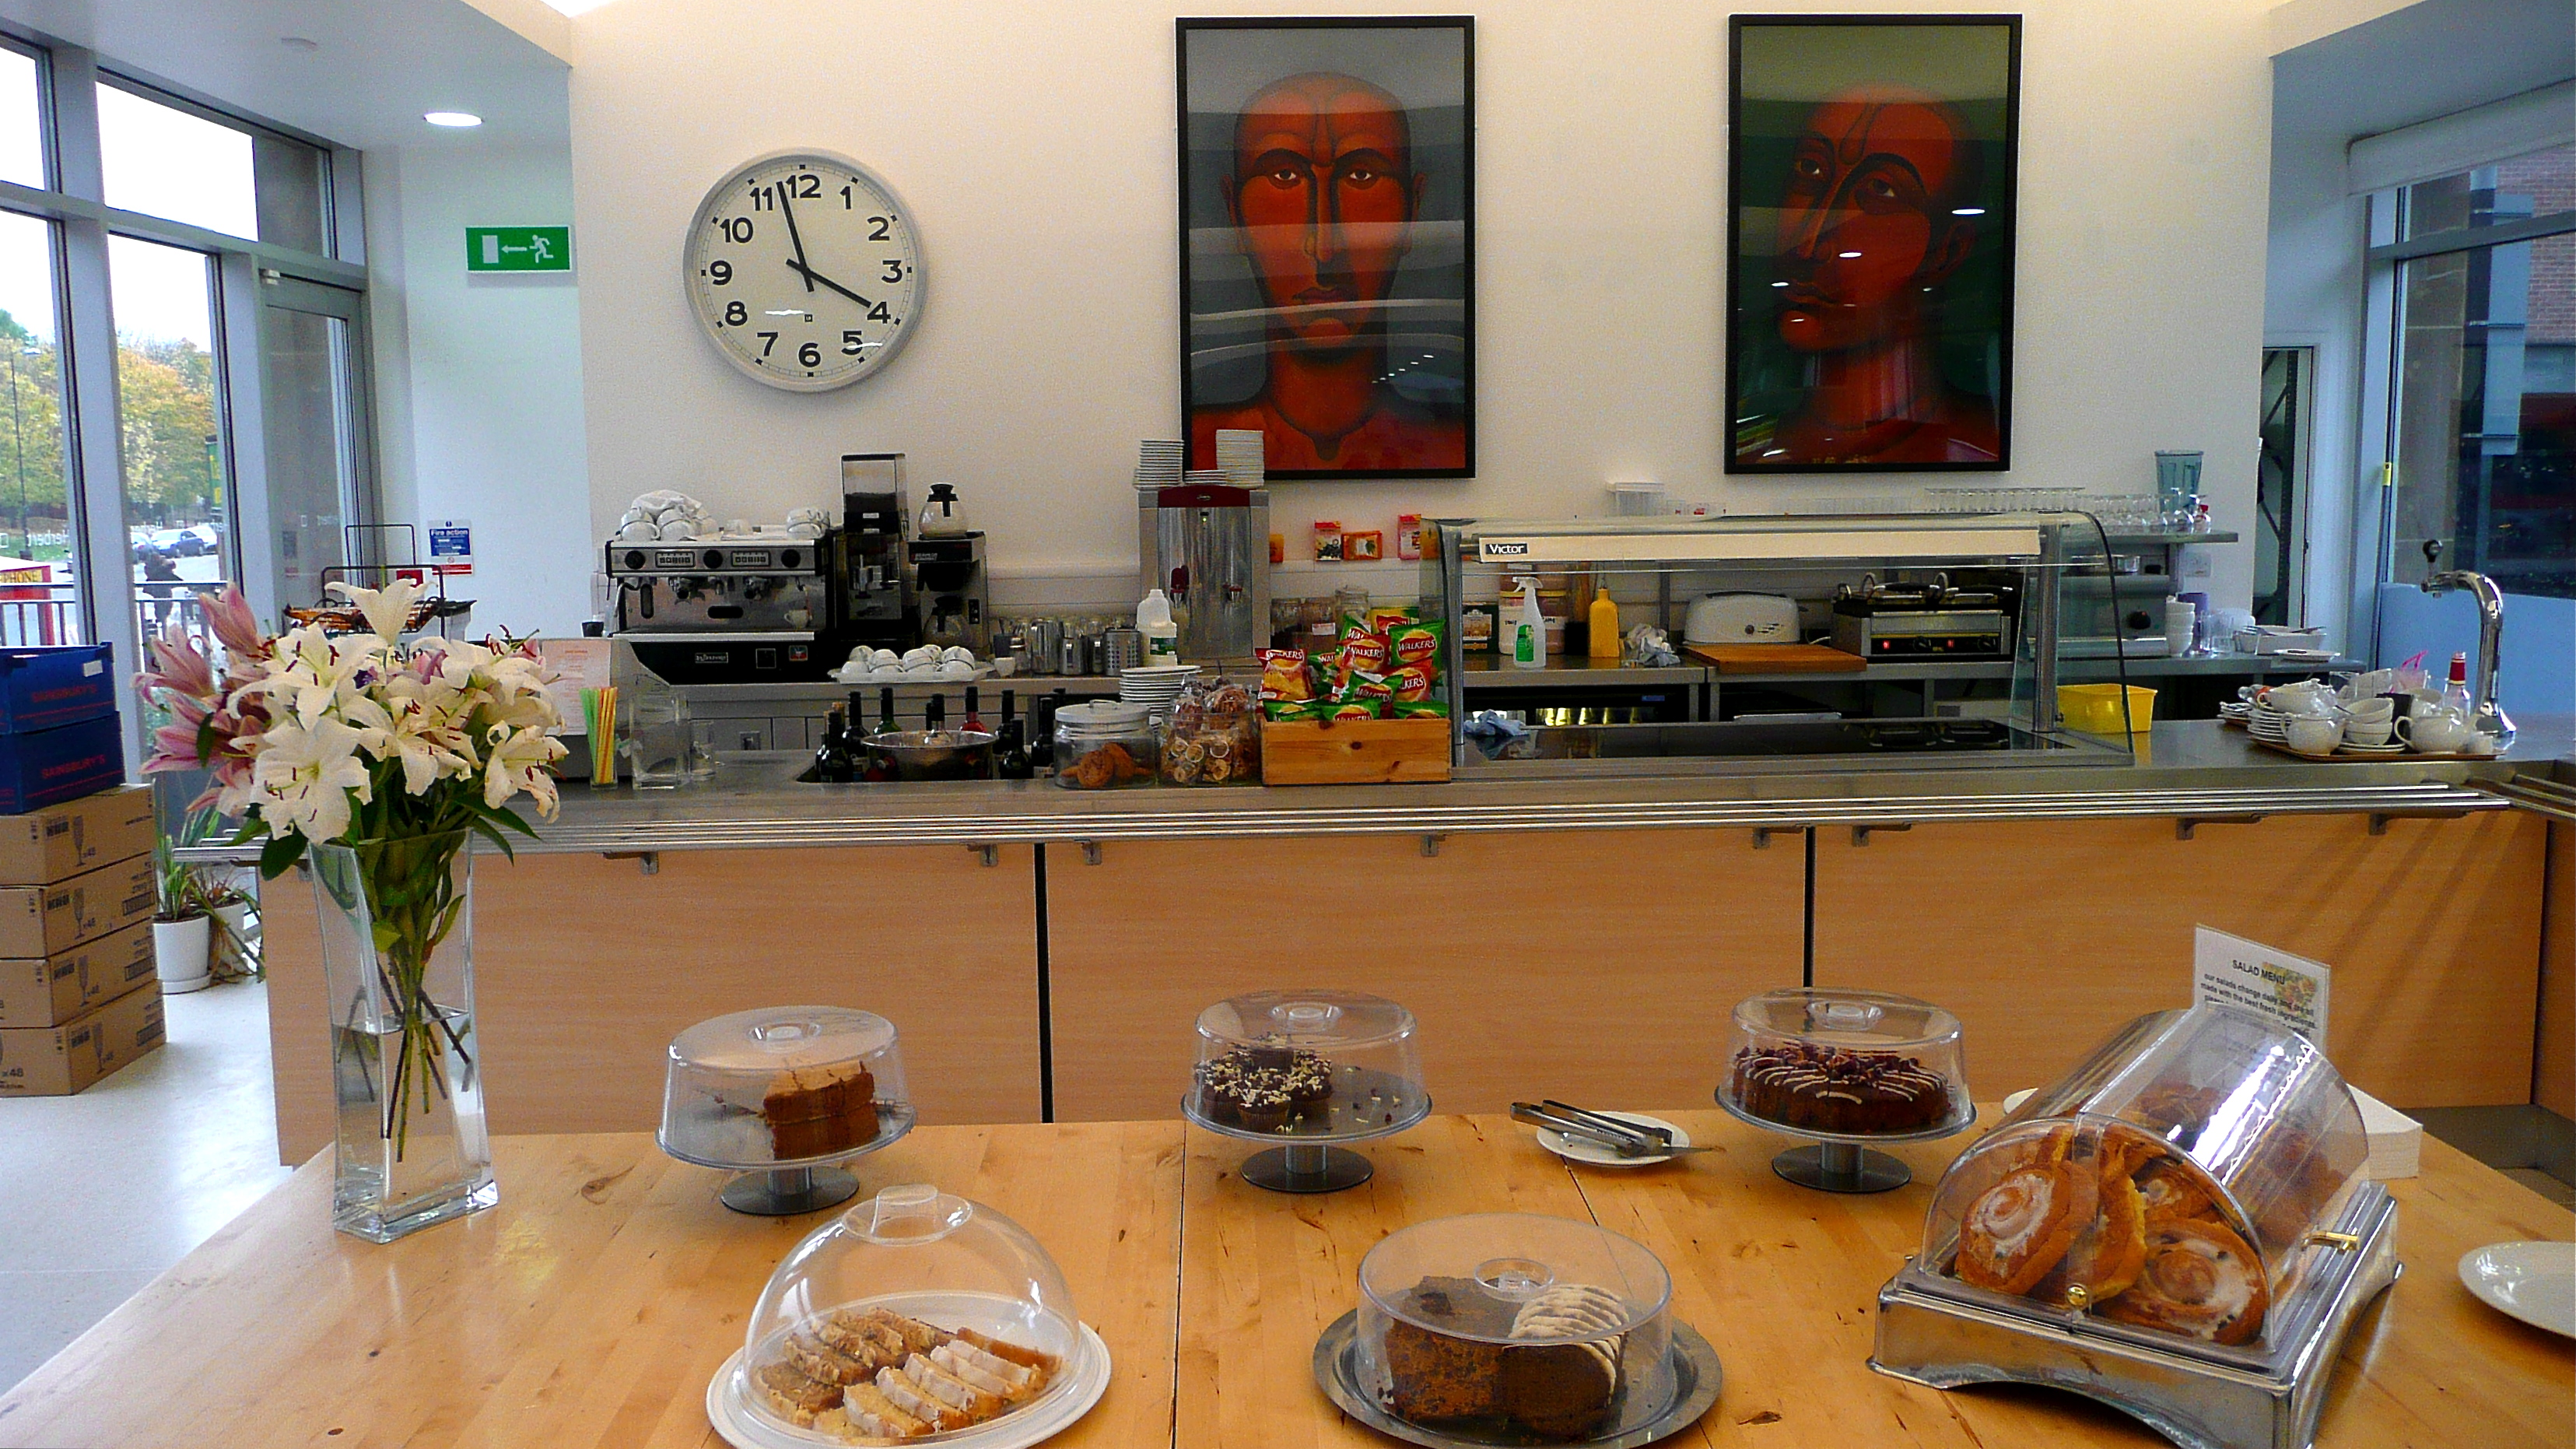 File:Herbert Art Museum and Gallery, Coventry - Cafe.jpg